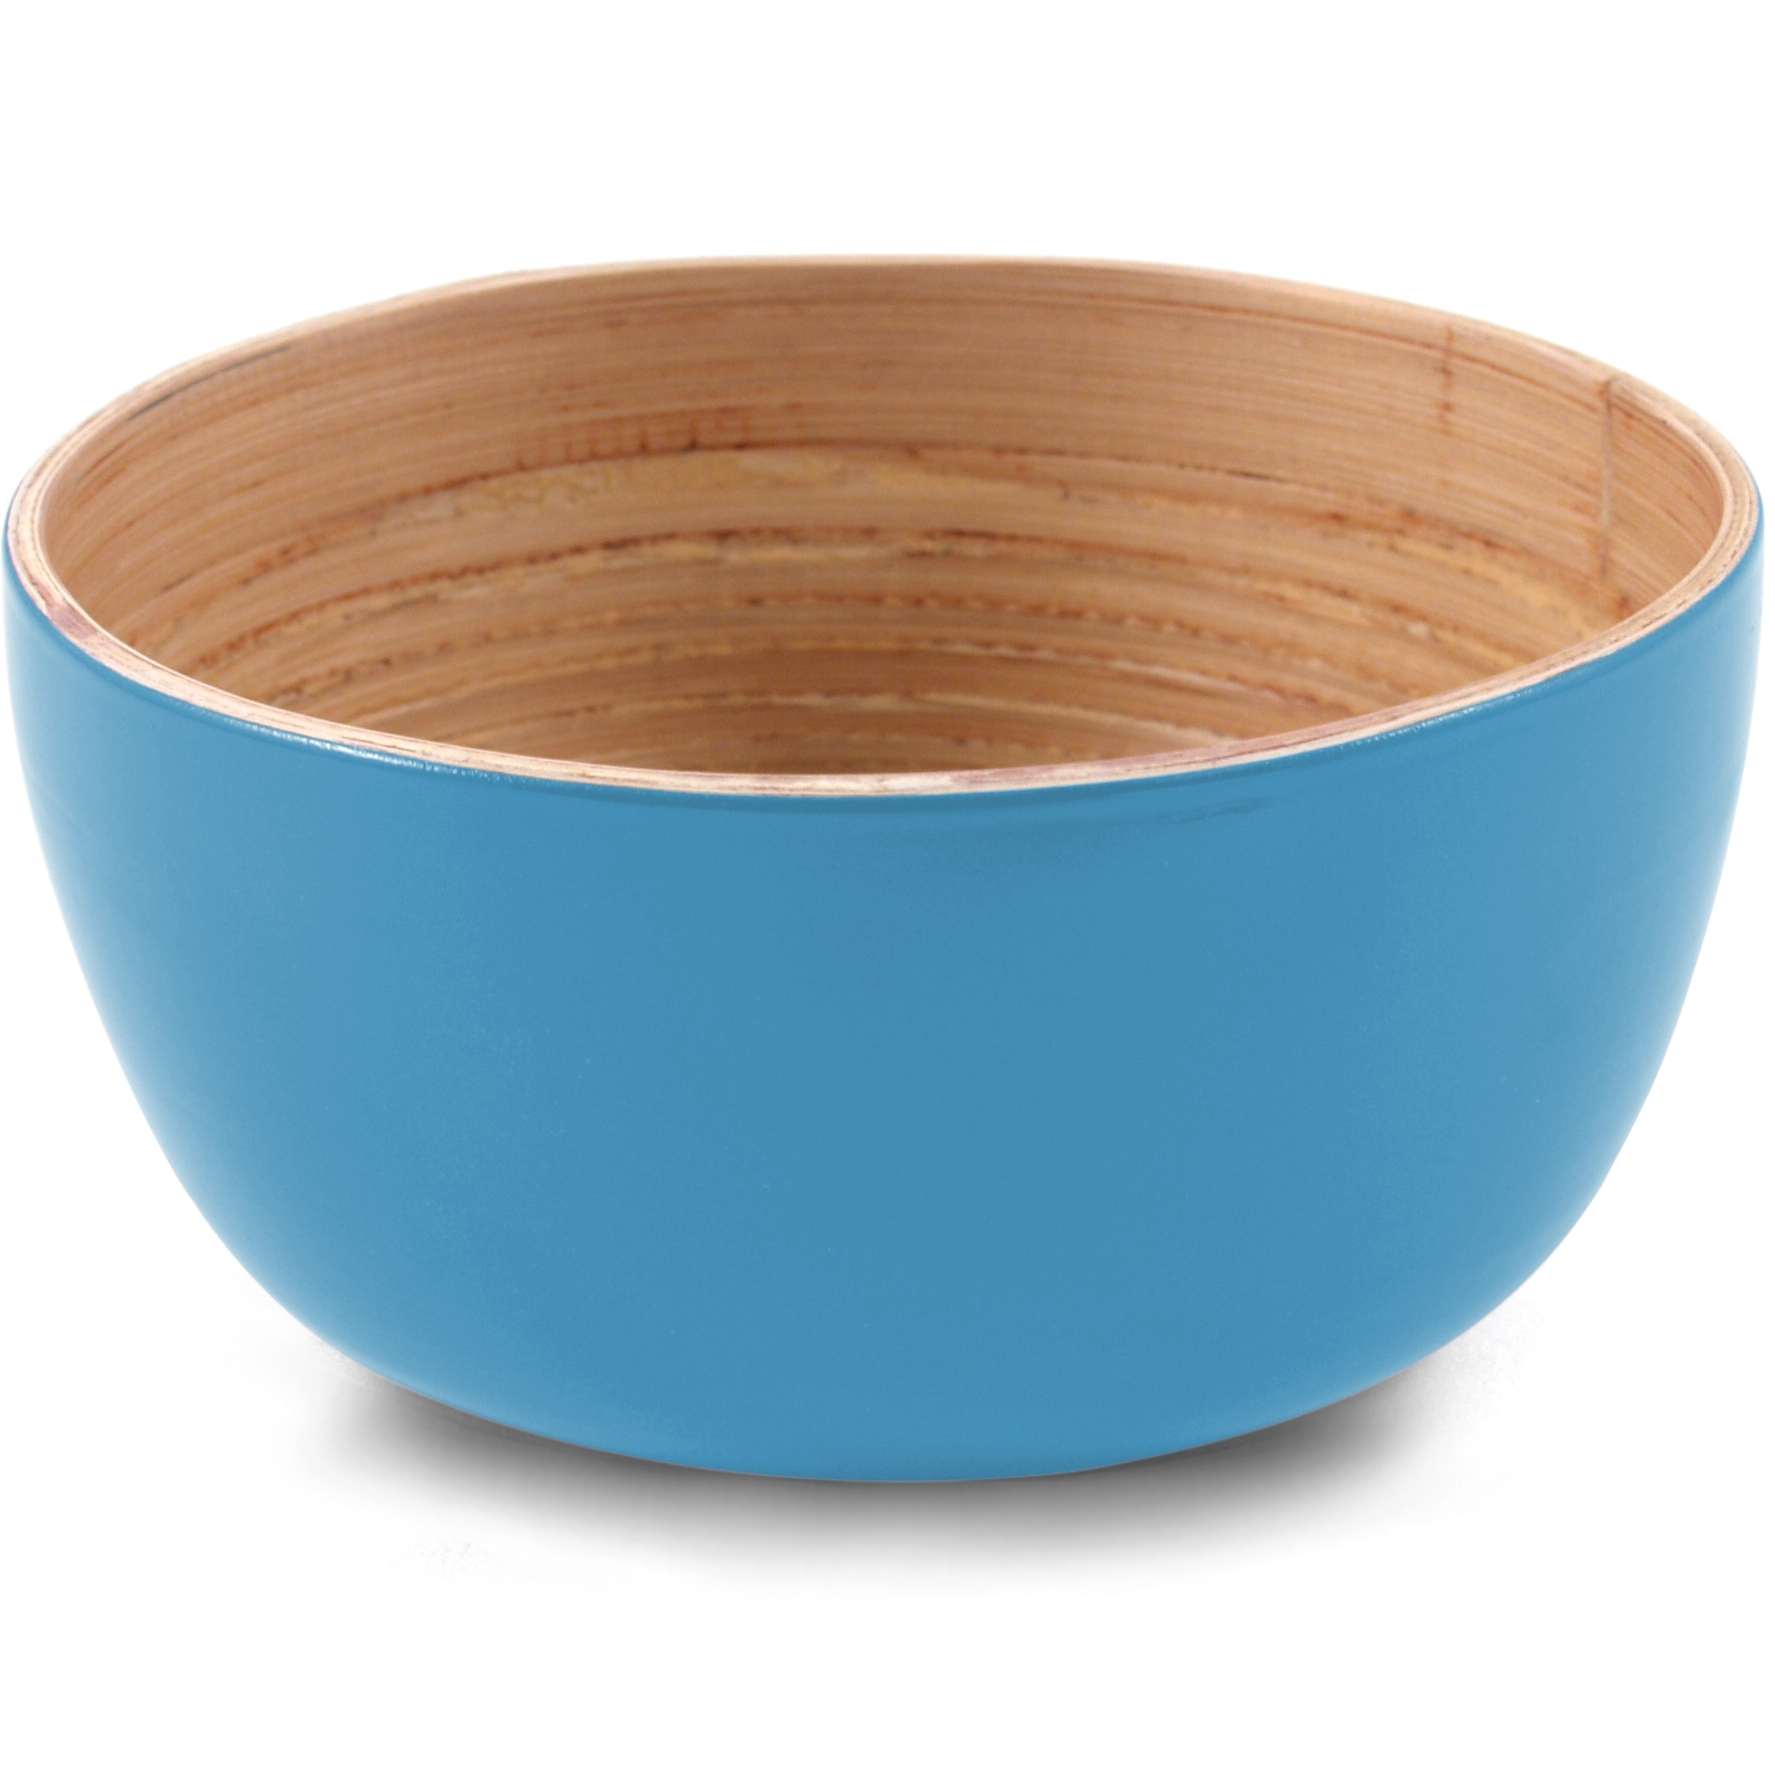 Core Bamboo Sky Blue Small Bowl, Set of 4